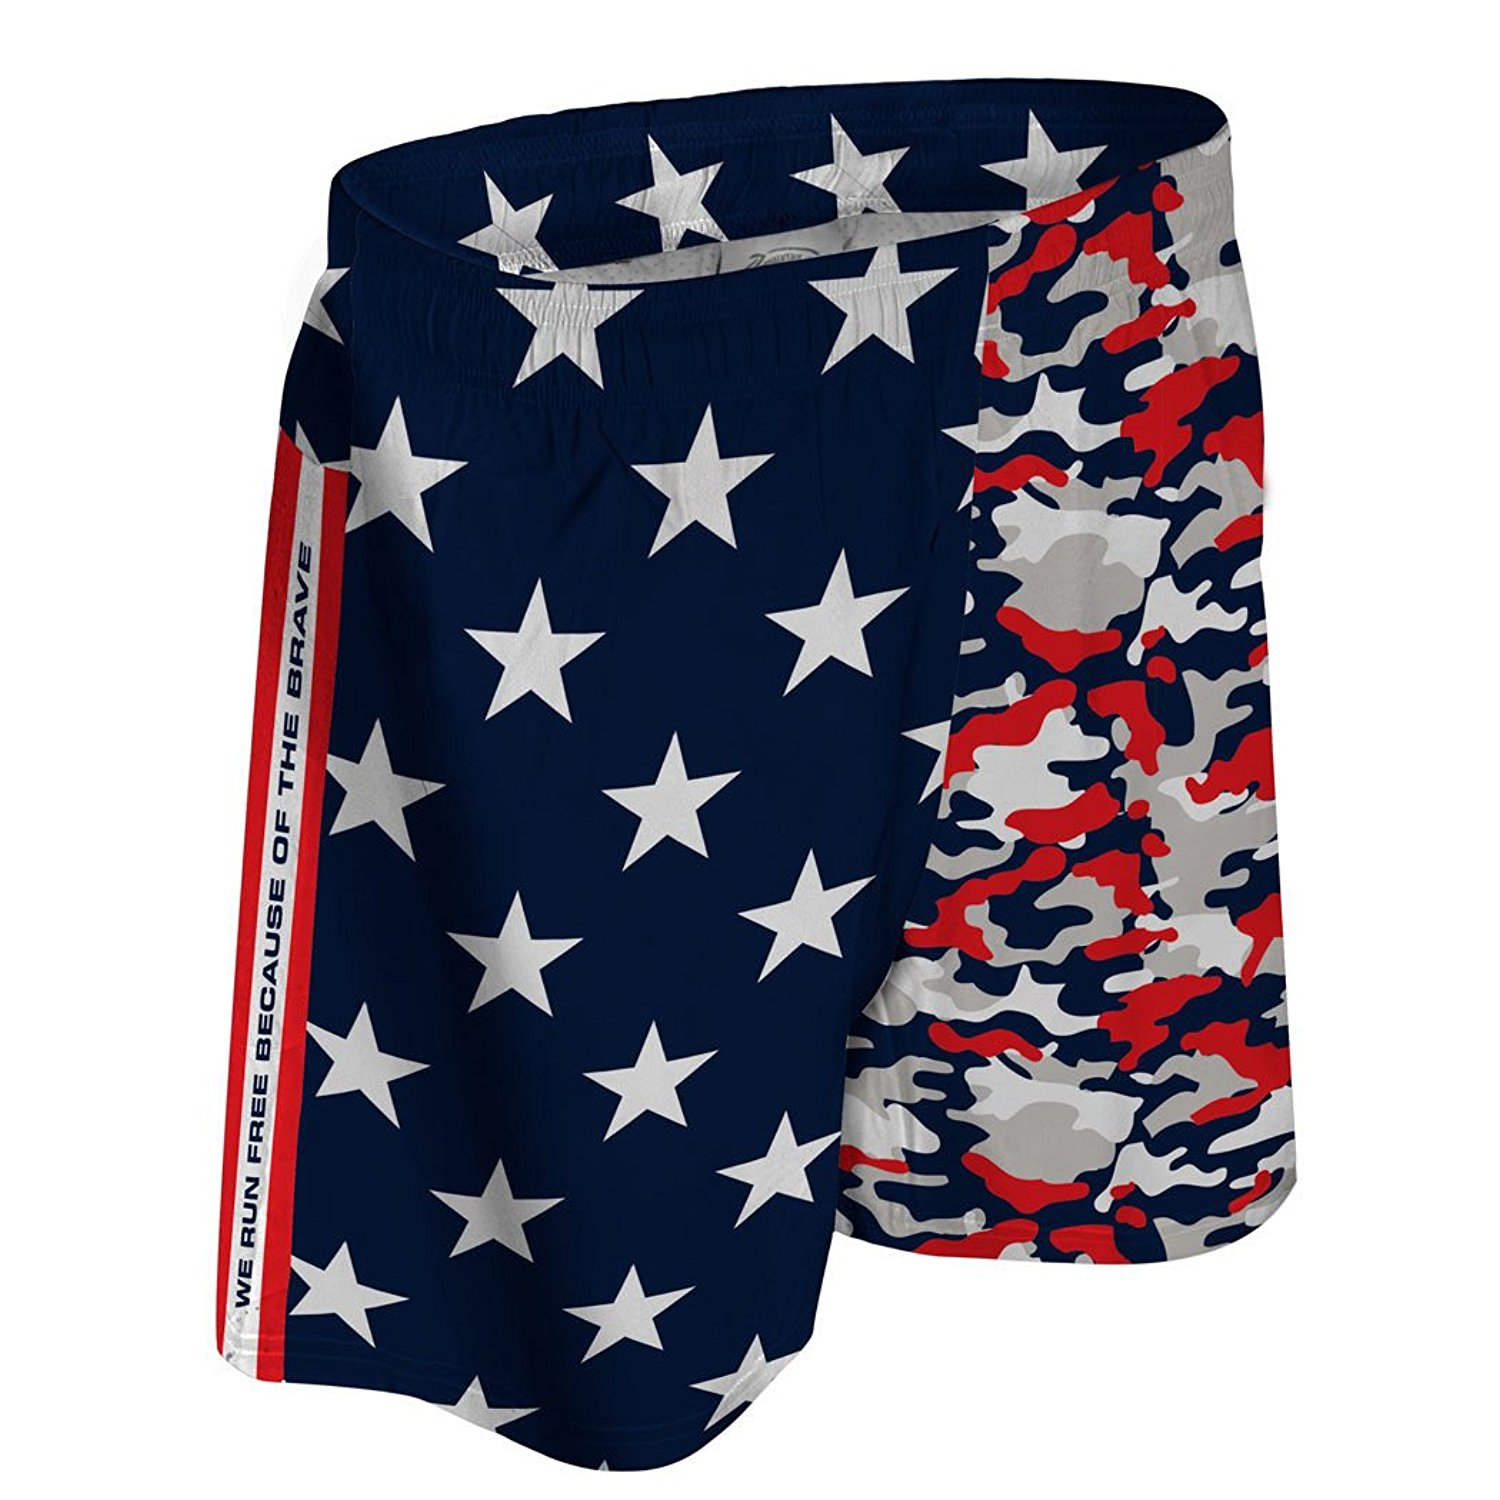 new style 8ccaa 969b5 Get Quotations · Gone For a Run Run Free Red White and Blue Running Shorts    Guys Running Shorts